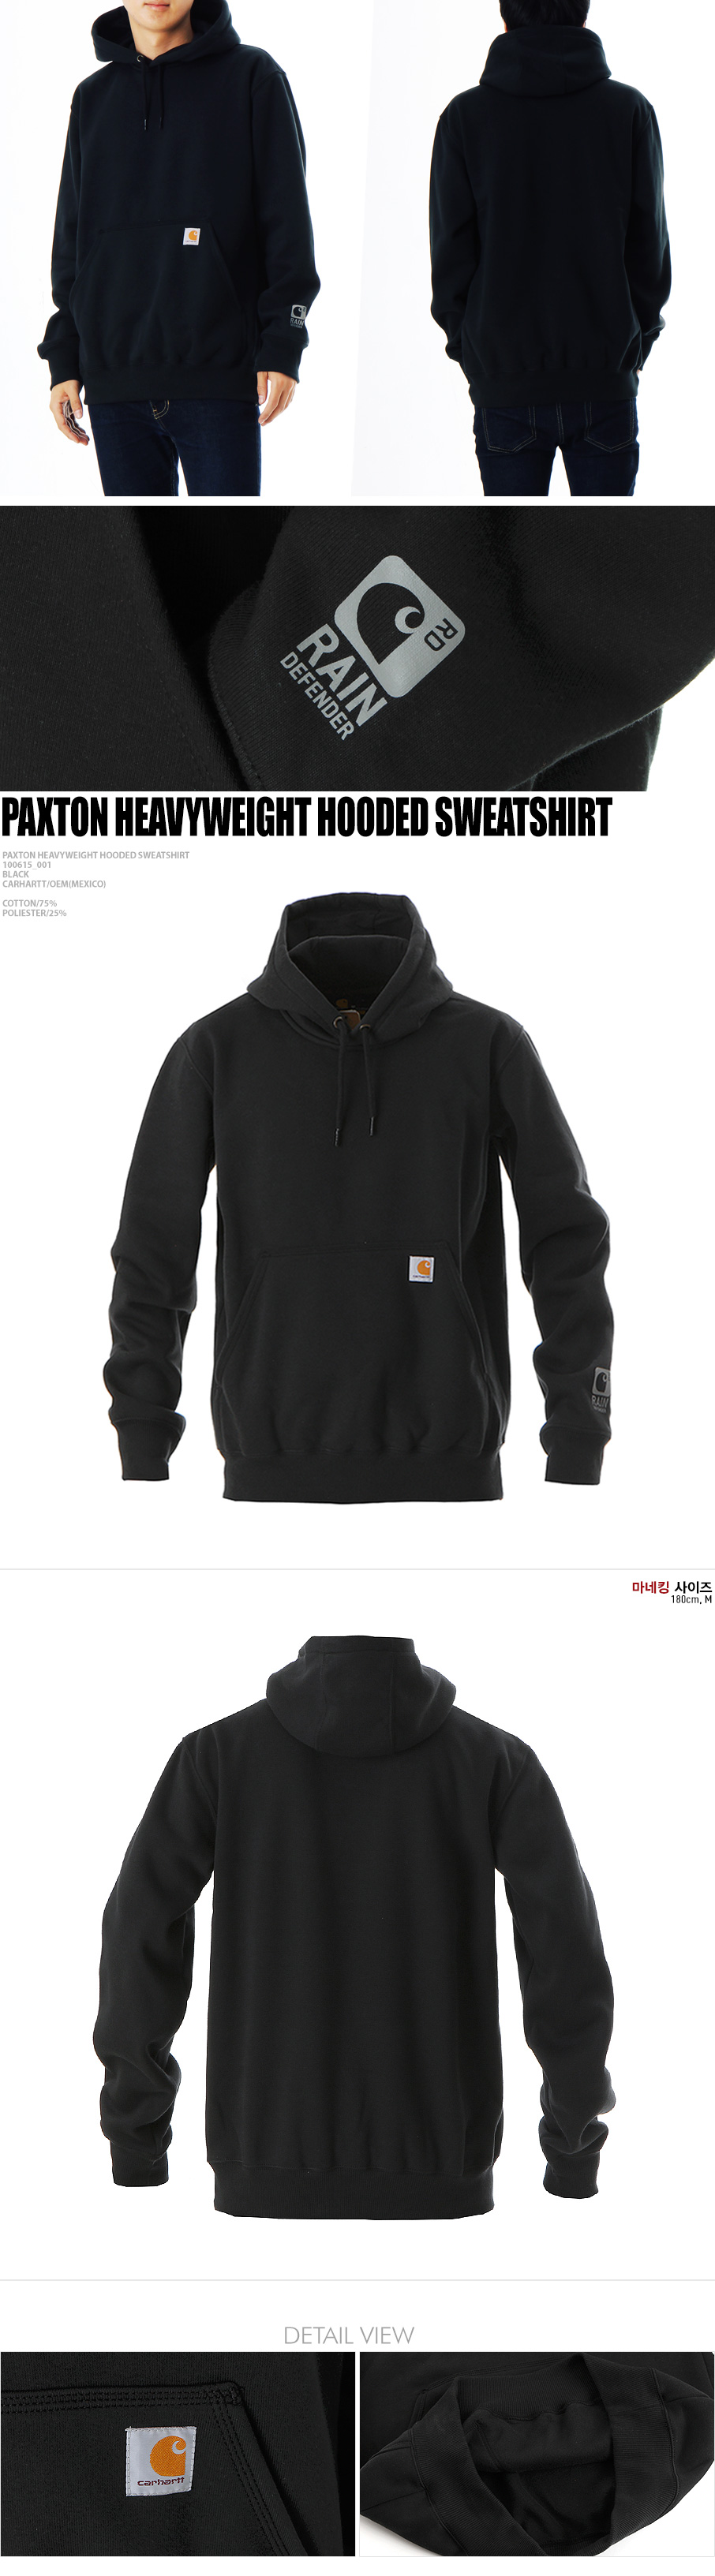 칼하트 팩스톤 헤비웨이트 후드 블랙 (CARHARTT PAXTON HEAVYWEIGHT HOODED SWEATSHIRT_BLACK)